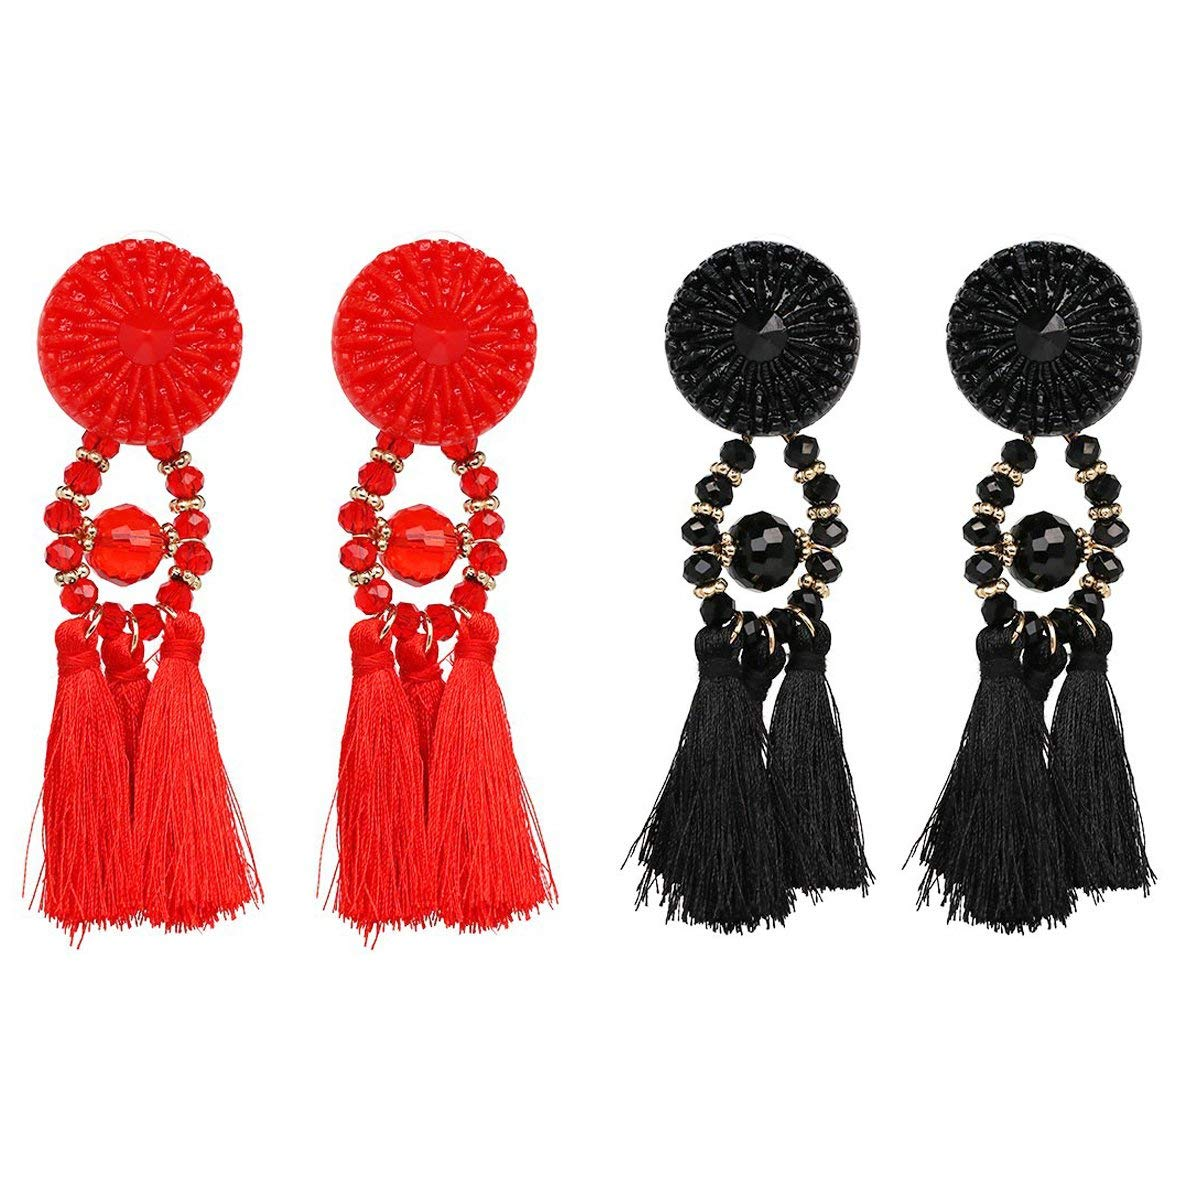 Bohemian Vintage Pierced Statement Thread Tassel Chandelier Drop Dangle Earrings Set, E15